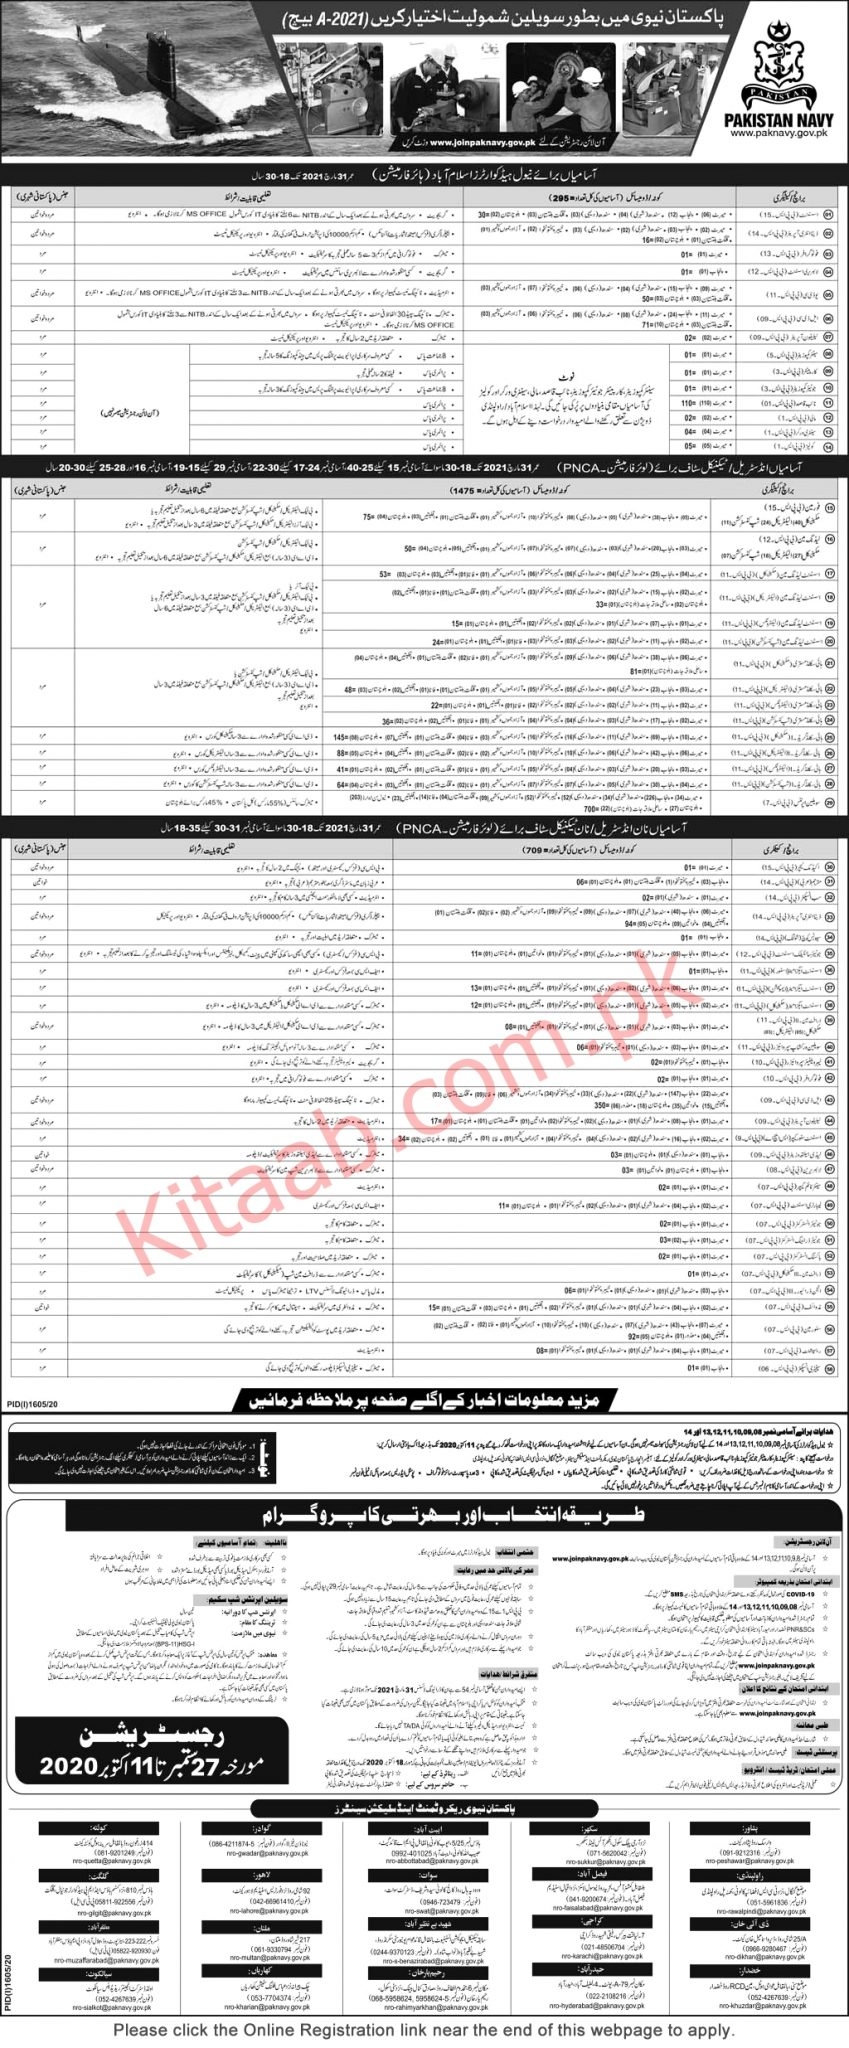 Join Pakistan Navy Civilian Jobs 2021-A Batch Online Registration Eligibility Criteria Last Date